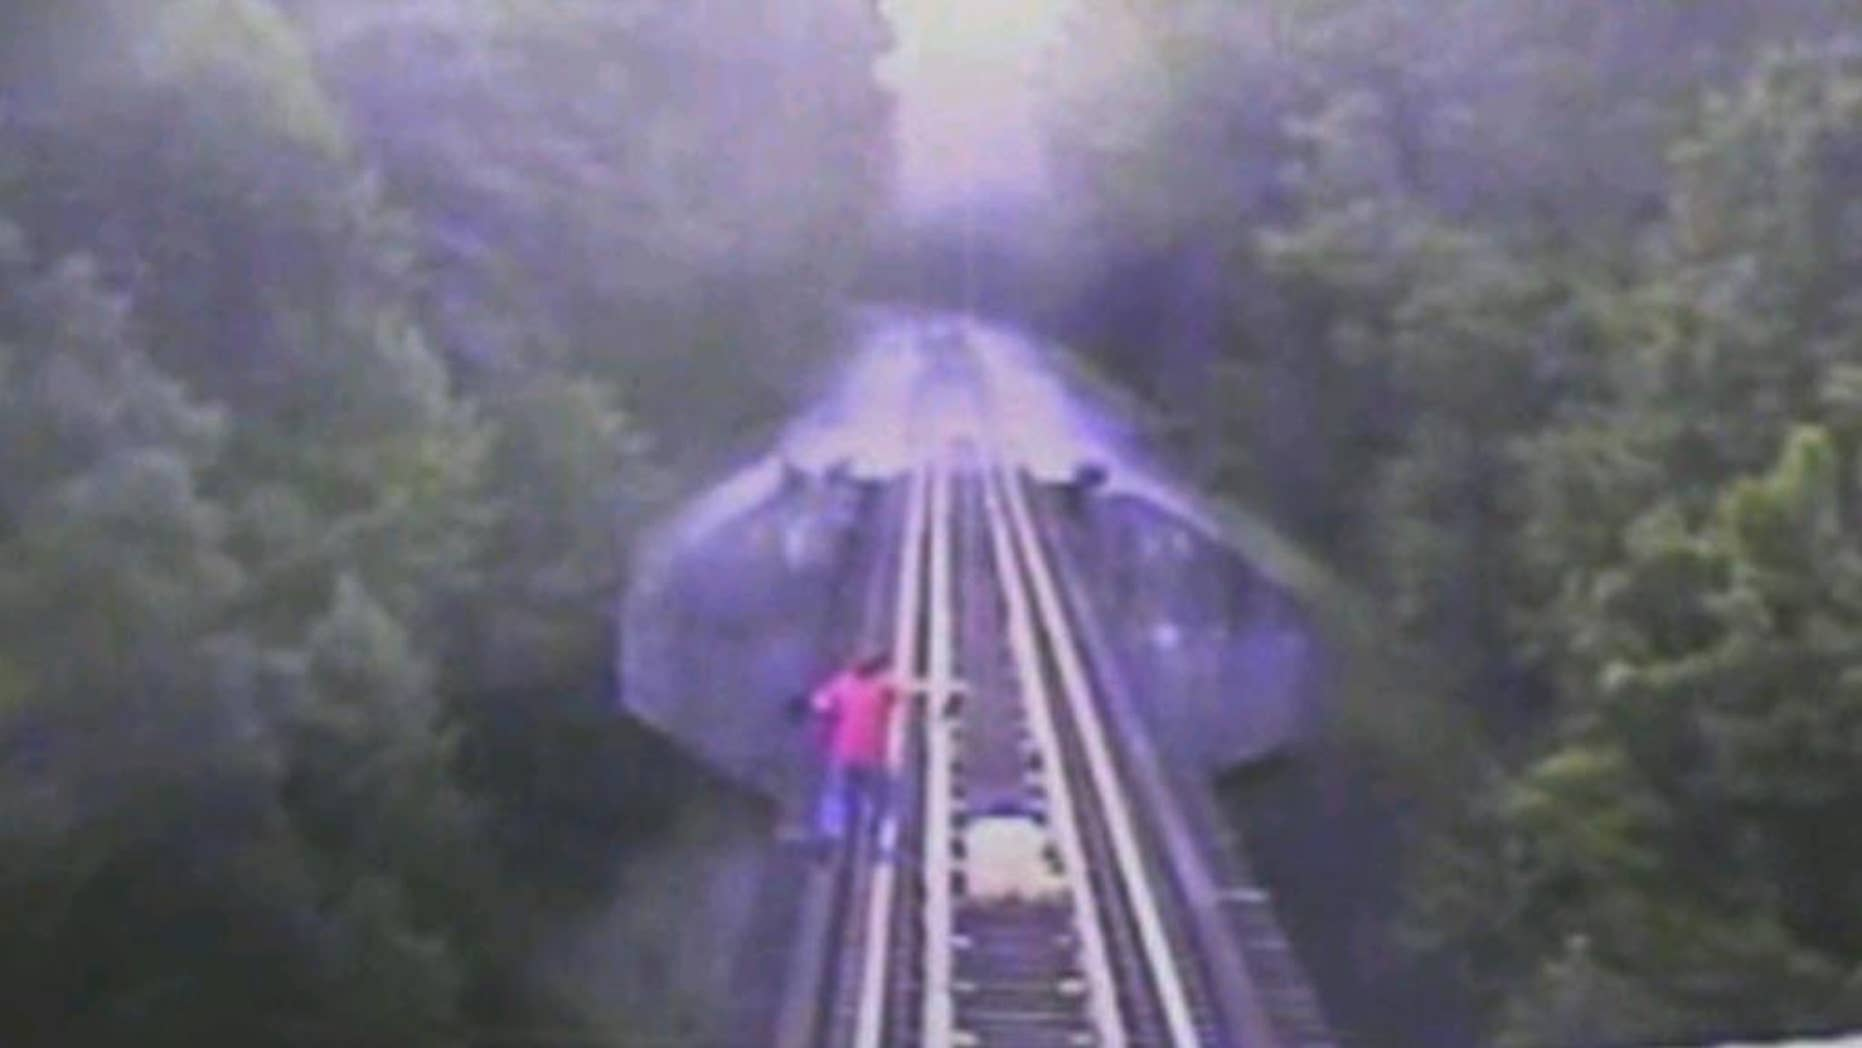 In this frame grab from surveillance video provided by the Indiana Rail Road via WRTV, two women run down a railroad track ahead of a freight train coming toward them, Thursday, July 10, 2014, in Monroe County in Indiana. The women survived the incident, but authorities are reviewing the video for potential criminal charges. (AP Photo/Indiana Rail Road via WRTV)